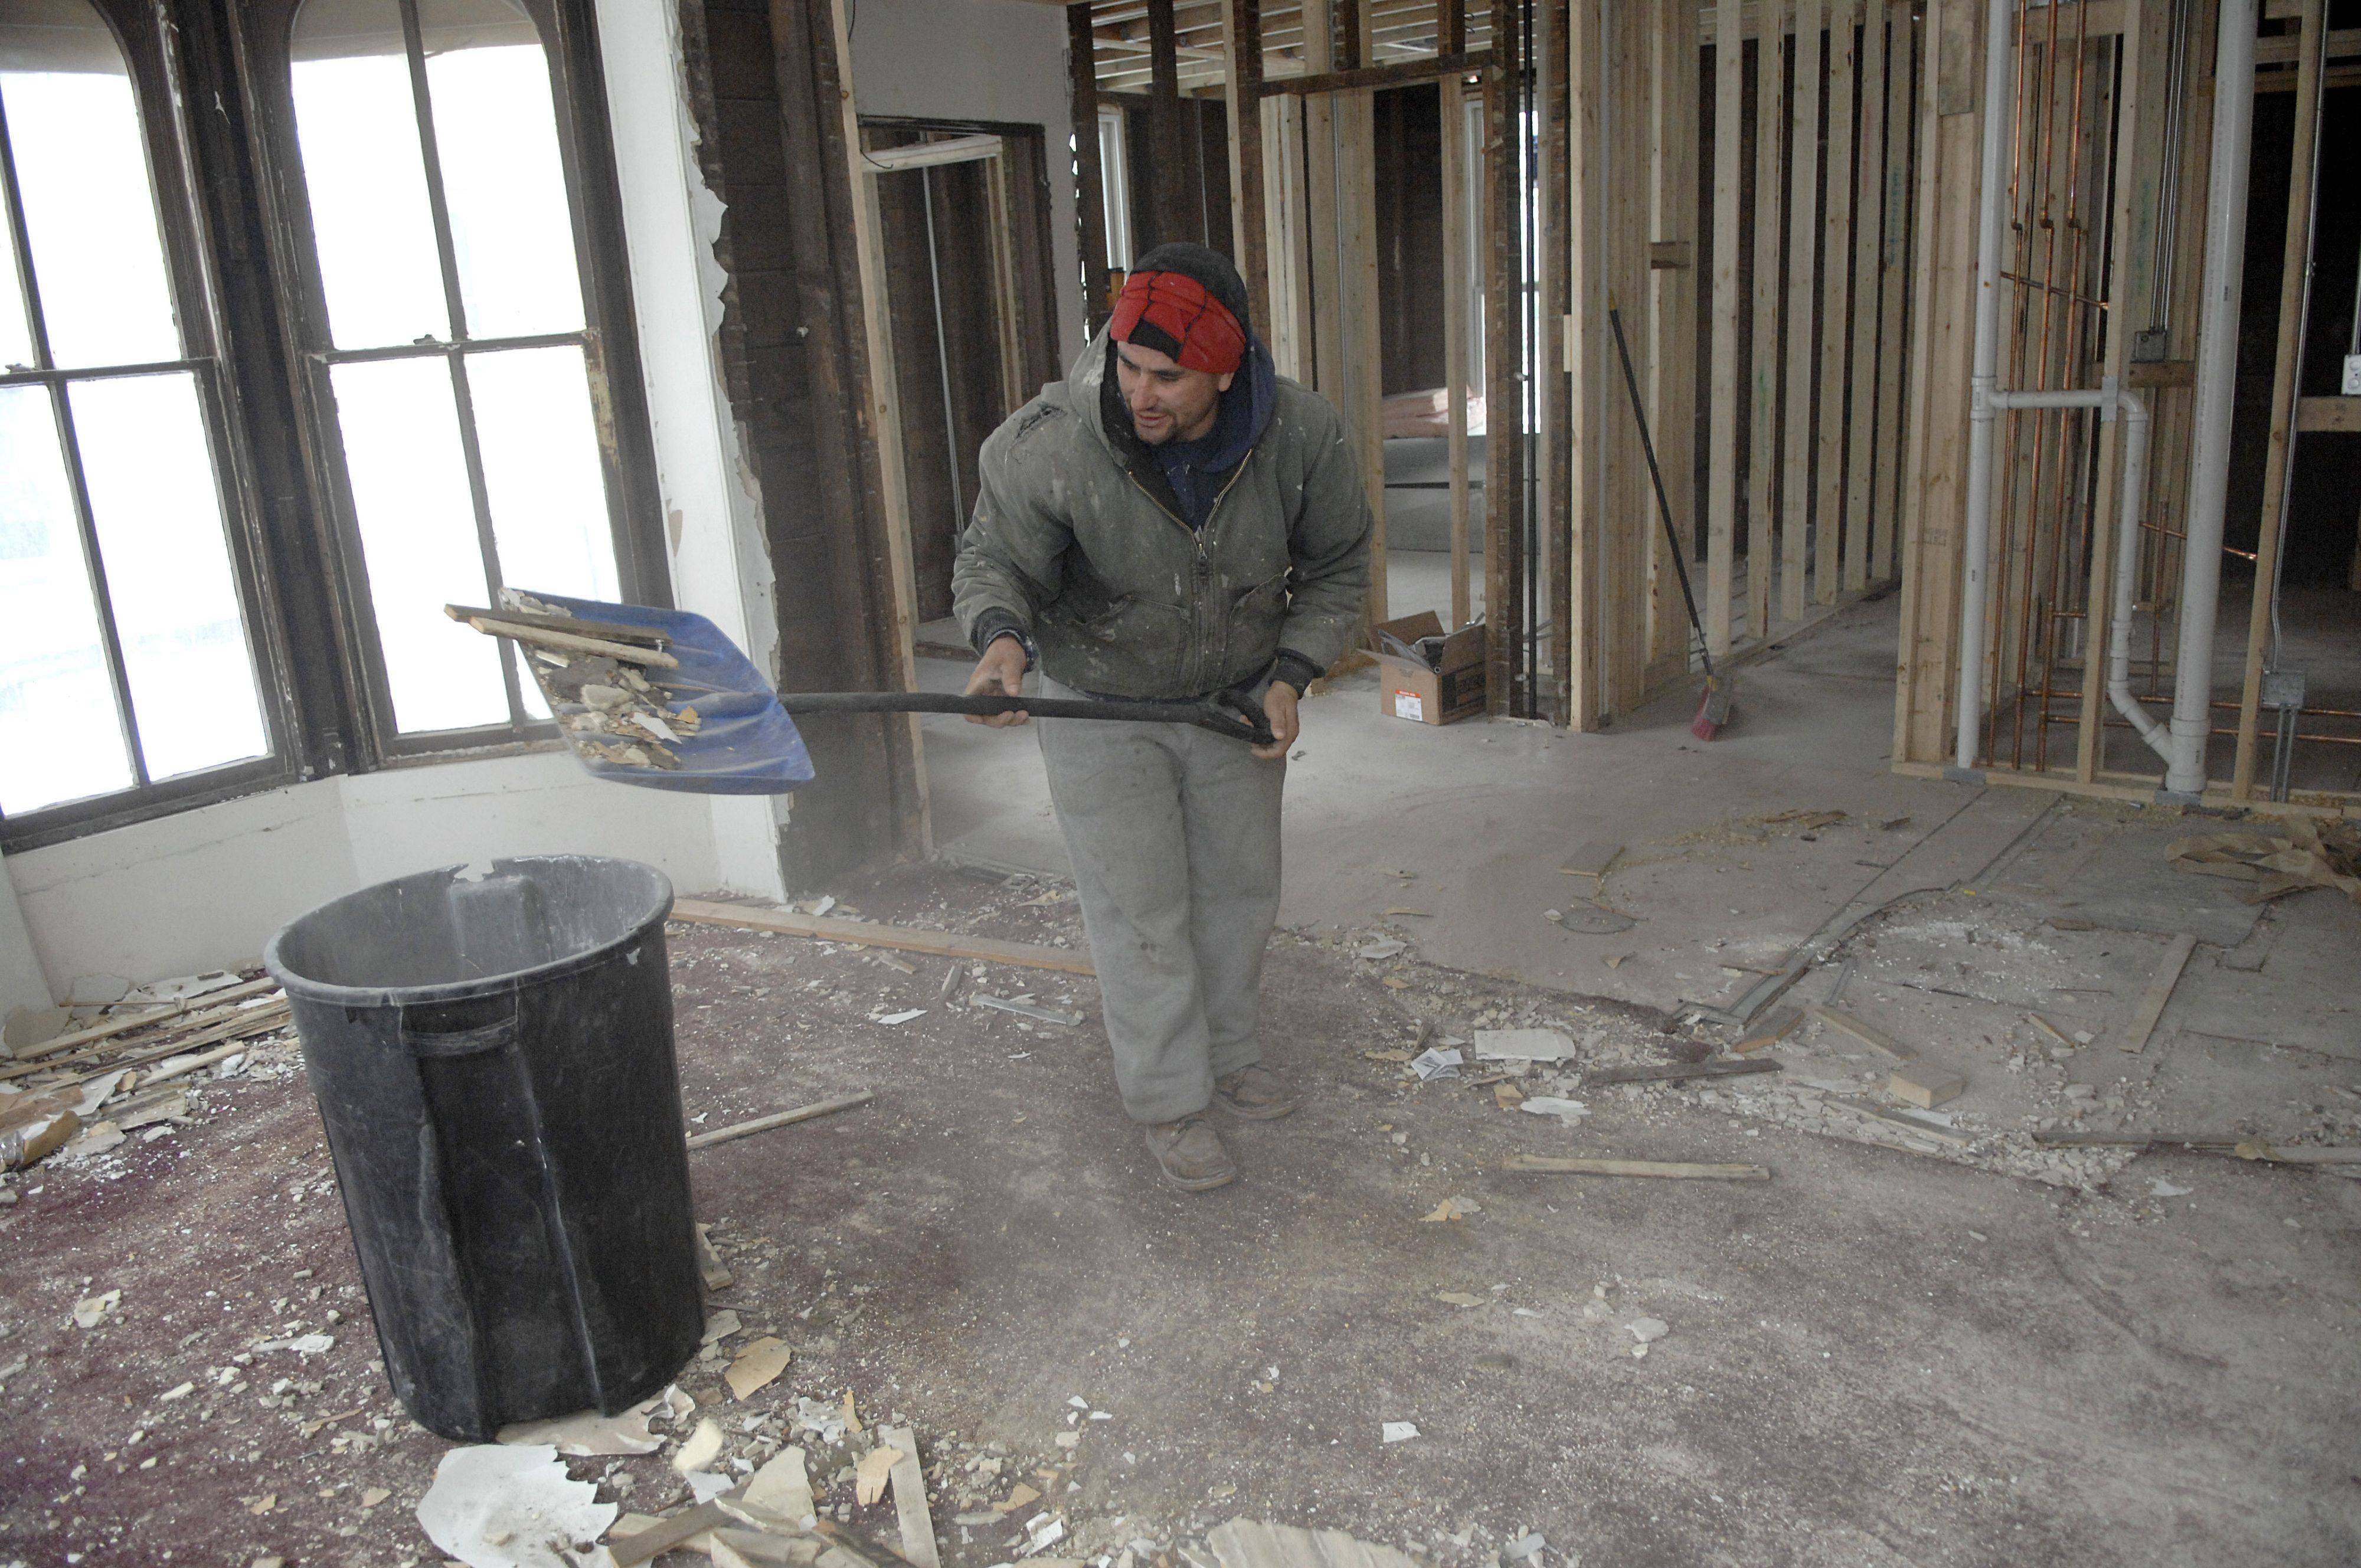 Rogelyo Grimaldo scoops up debris from the rehab at 457 E. Chicago St., another of Elgin's NSP home purchases. The rehabilitation of this home has been completed and the house is now for sale for $215,000.